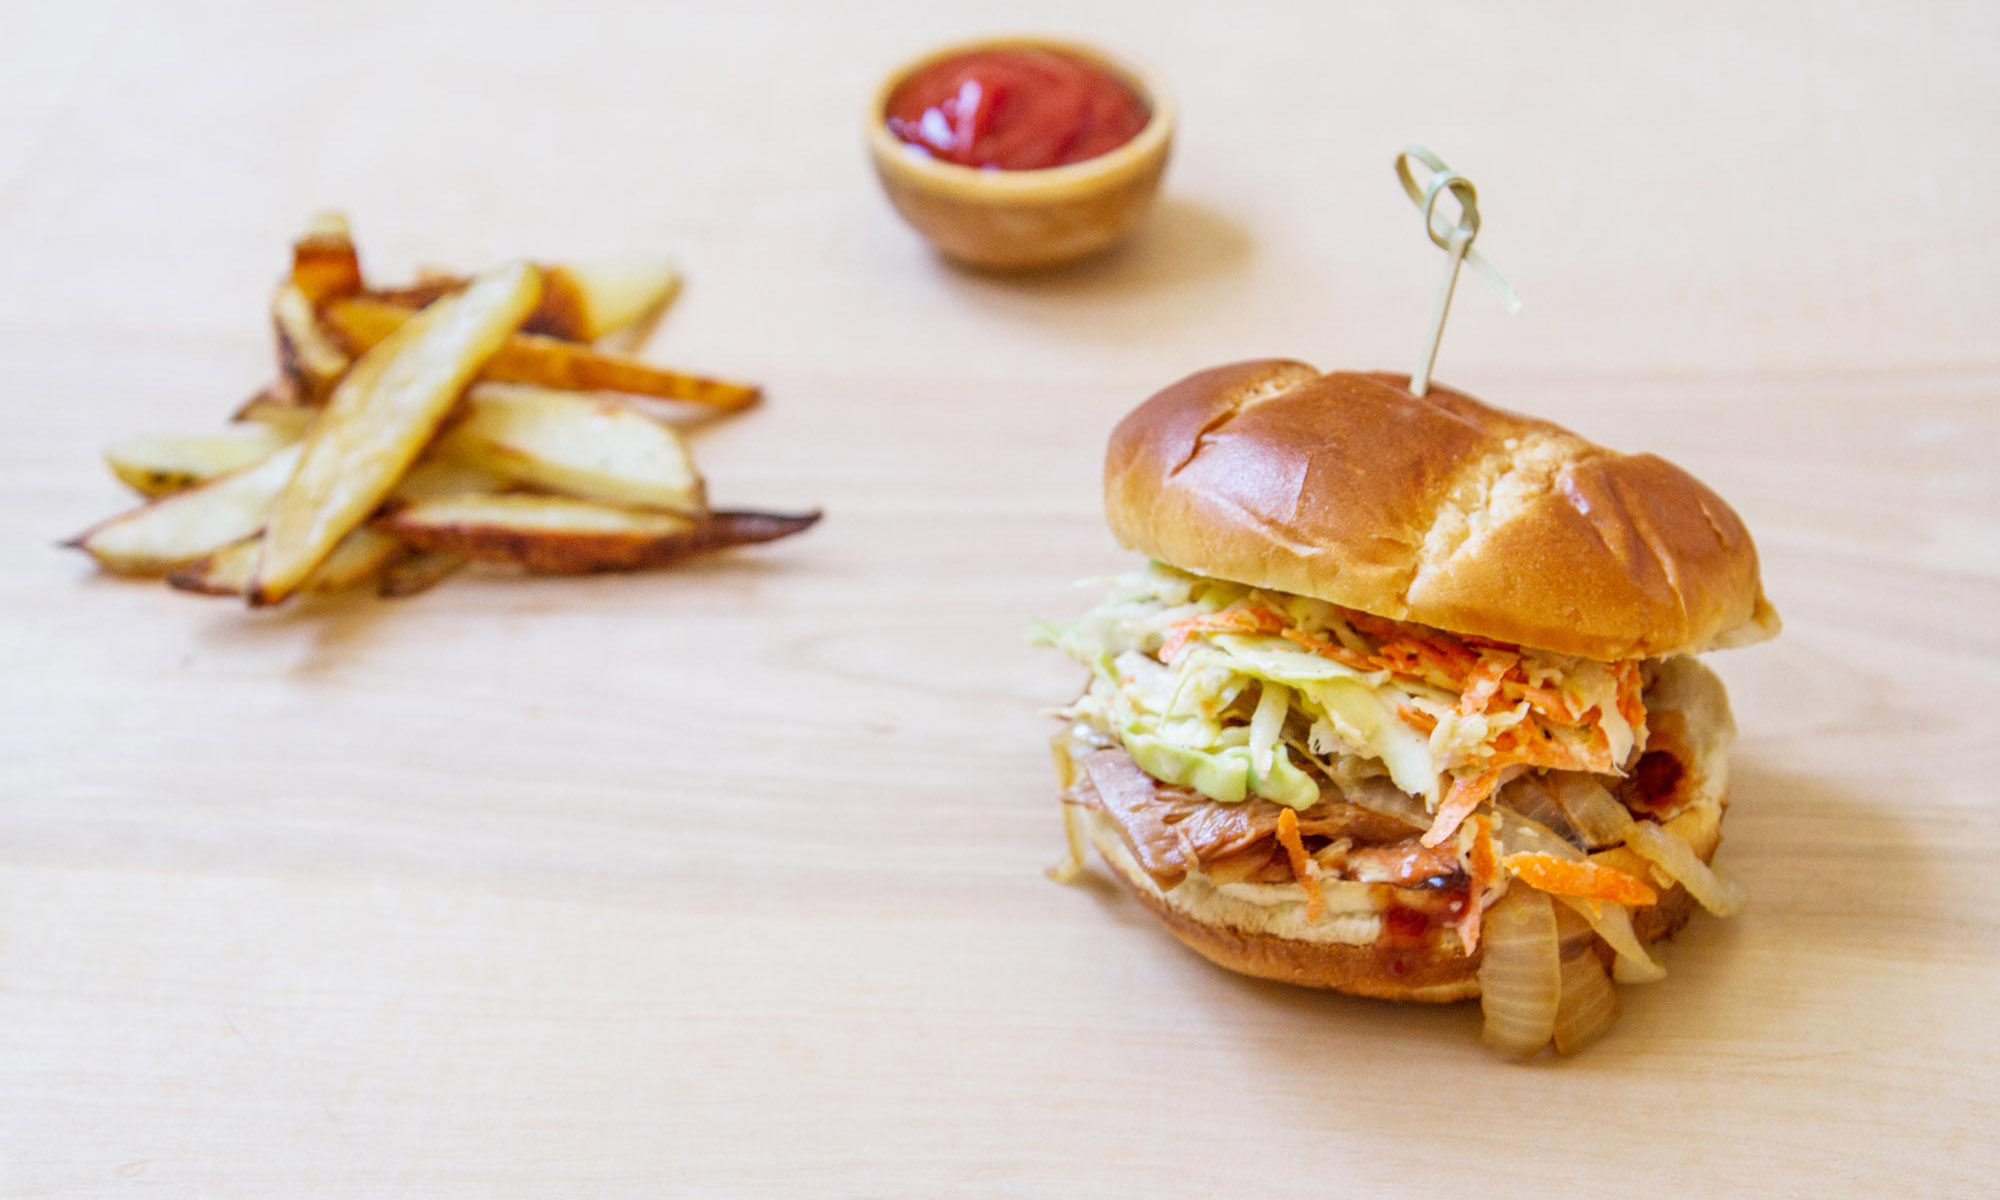 Bar-B-Que Slaw Sandwich with Caramelized Onions